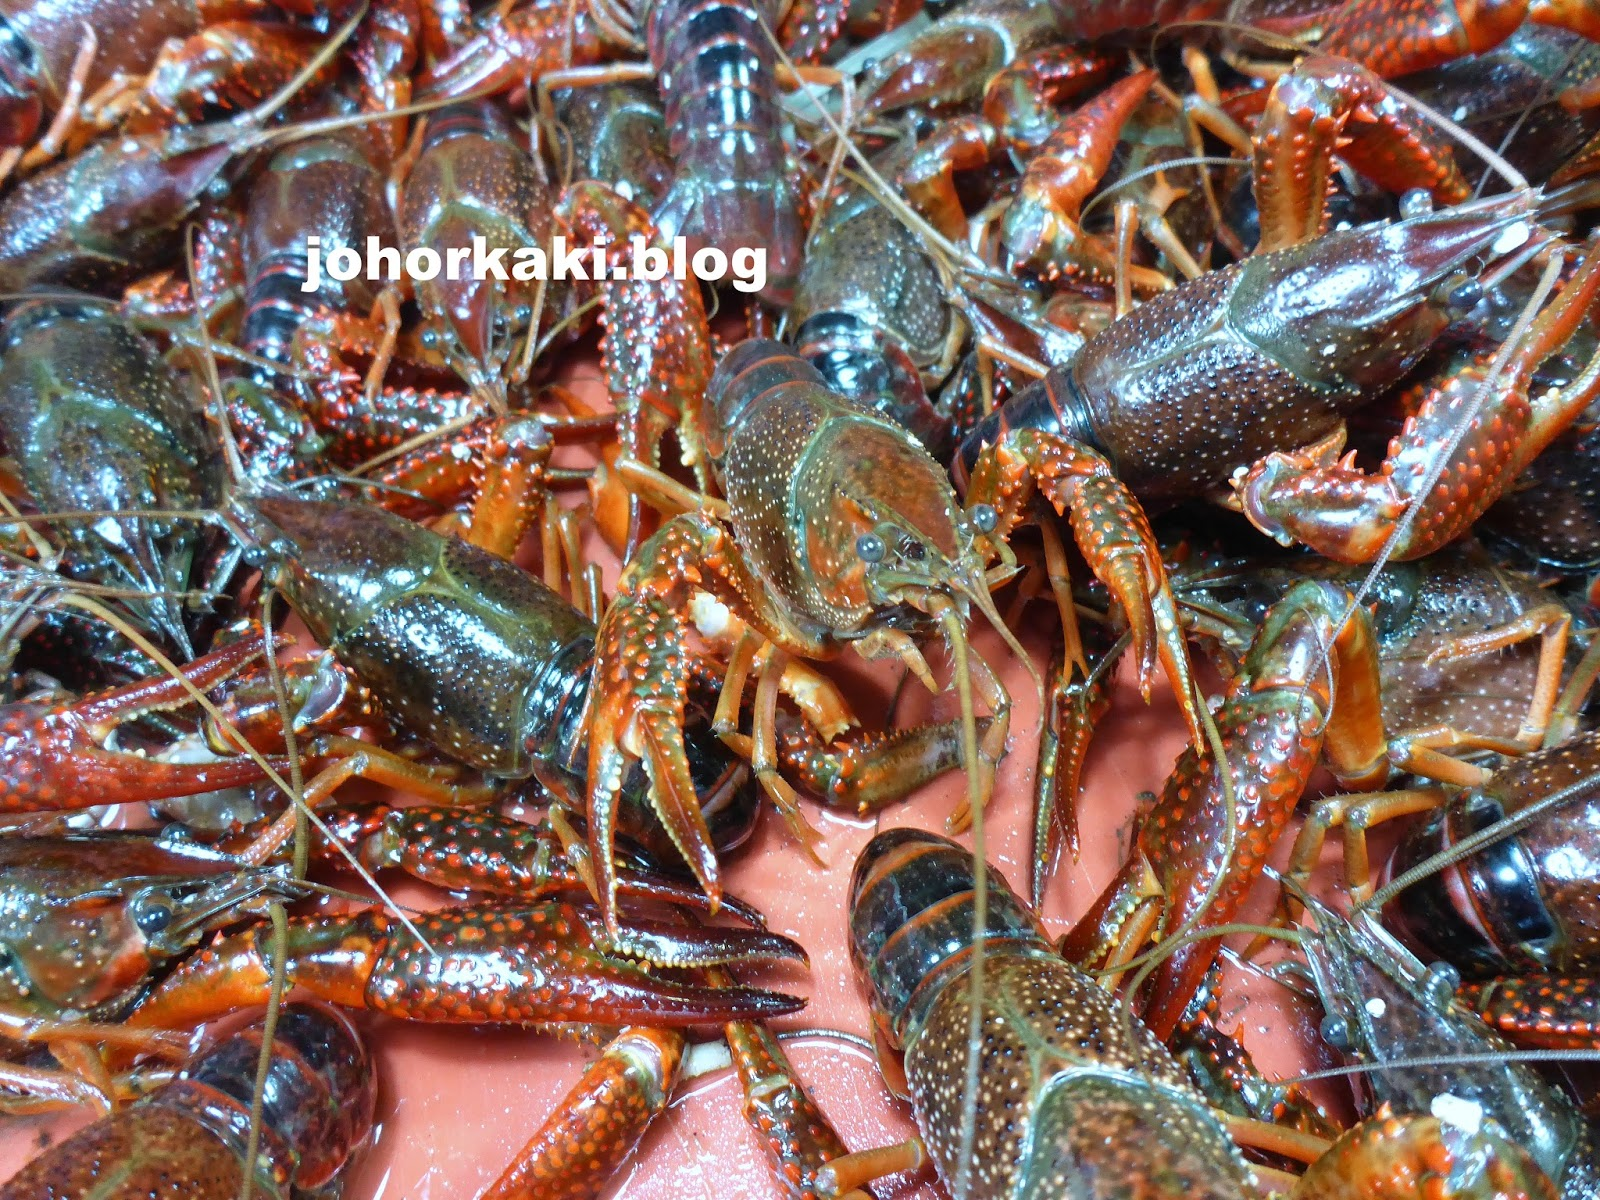 how to raise crayfish for food